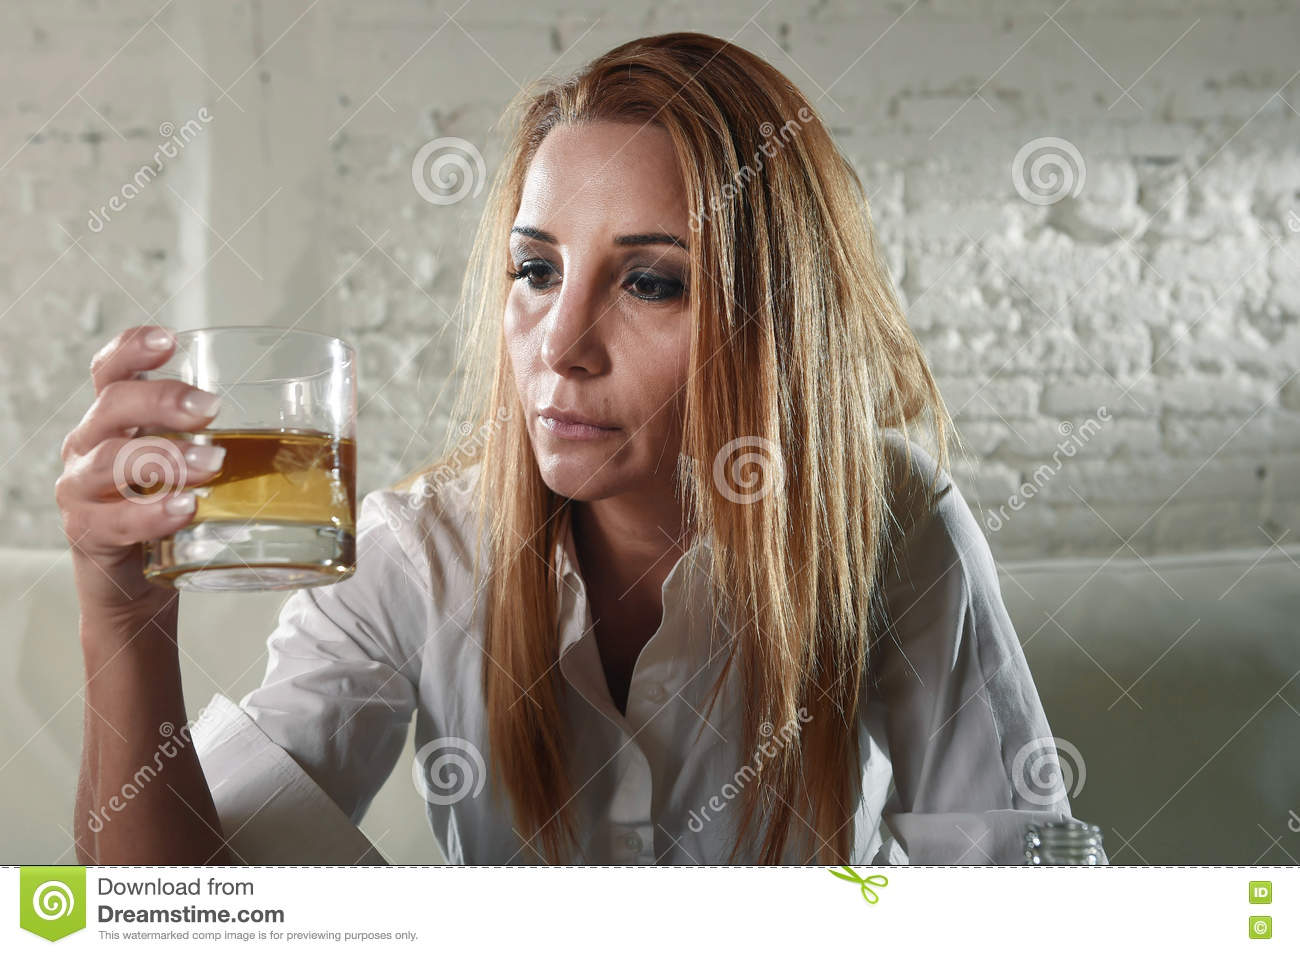 Download Sad Depressed Alcoholic Drunk Woman Drinking At Home In Housewife Alcohol Abuse And Alcoholism Stock Image - Image of face, home: 72854801